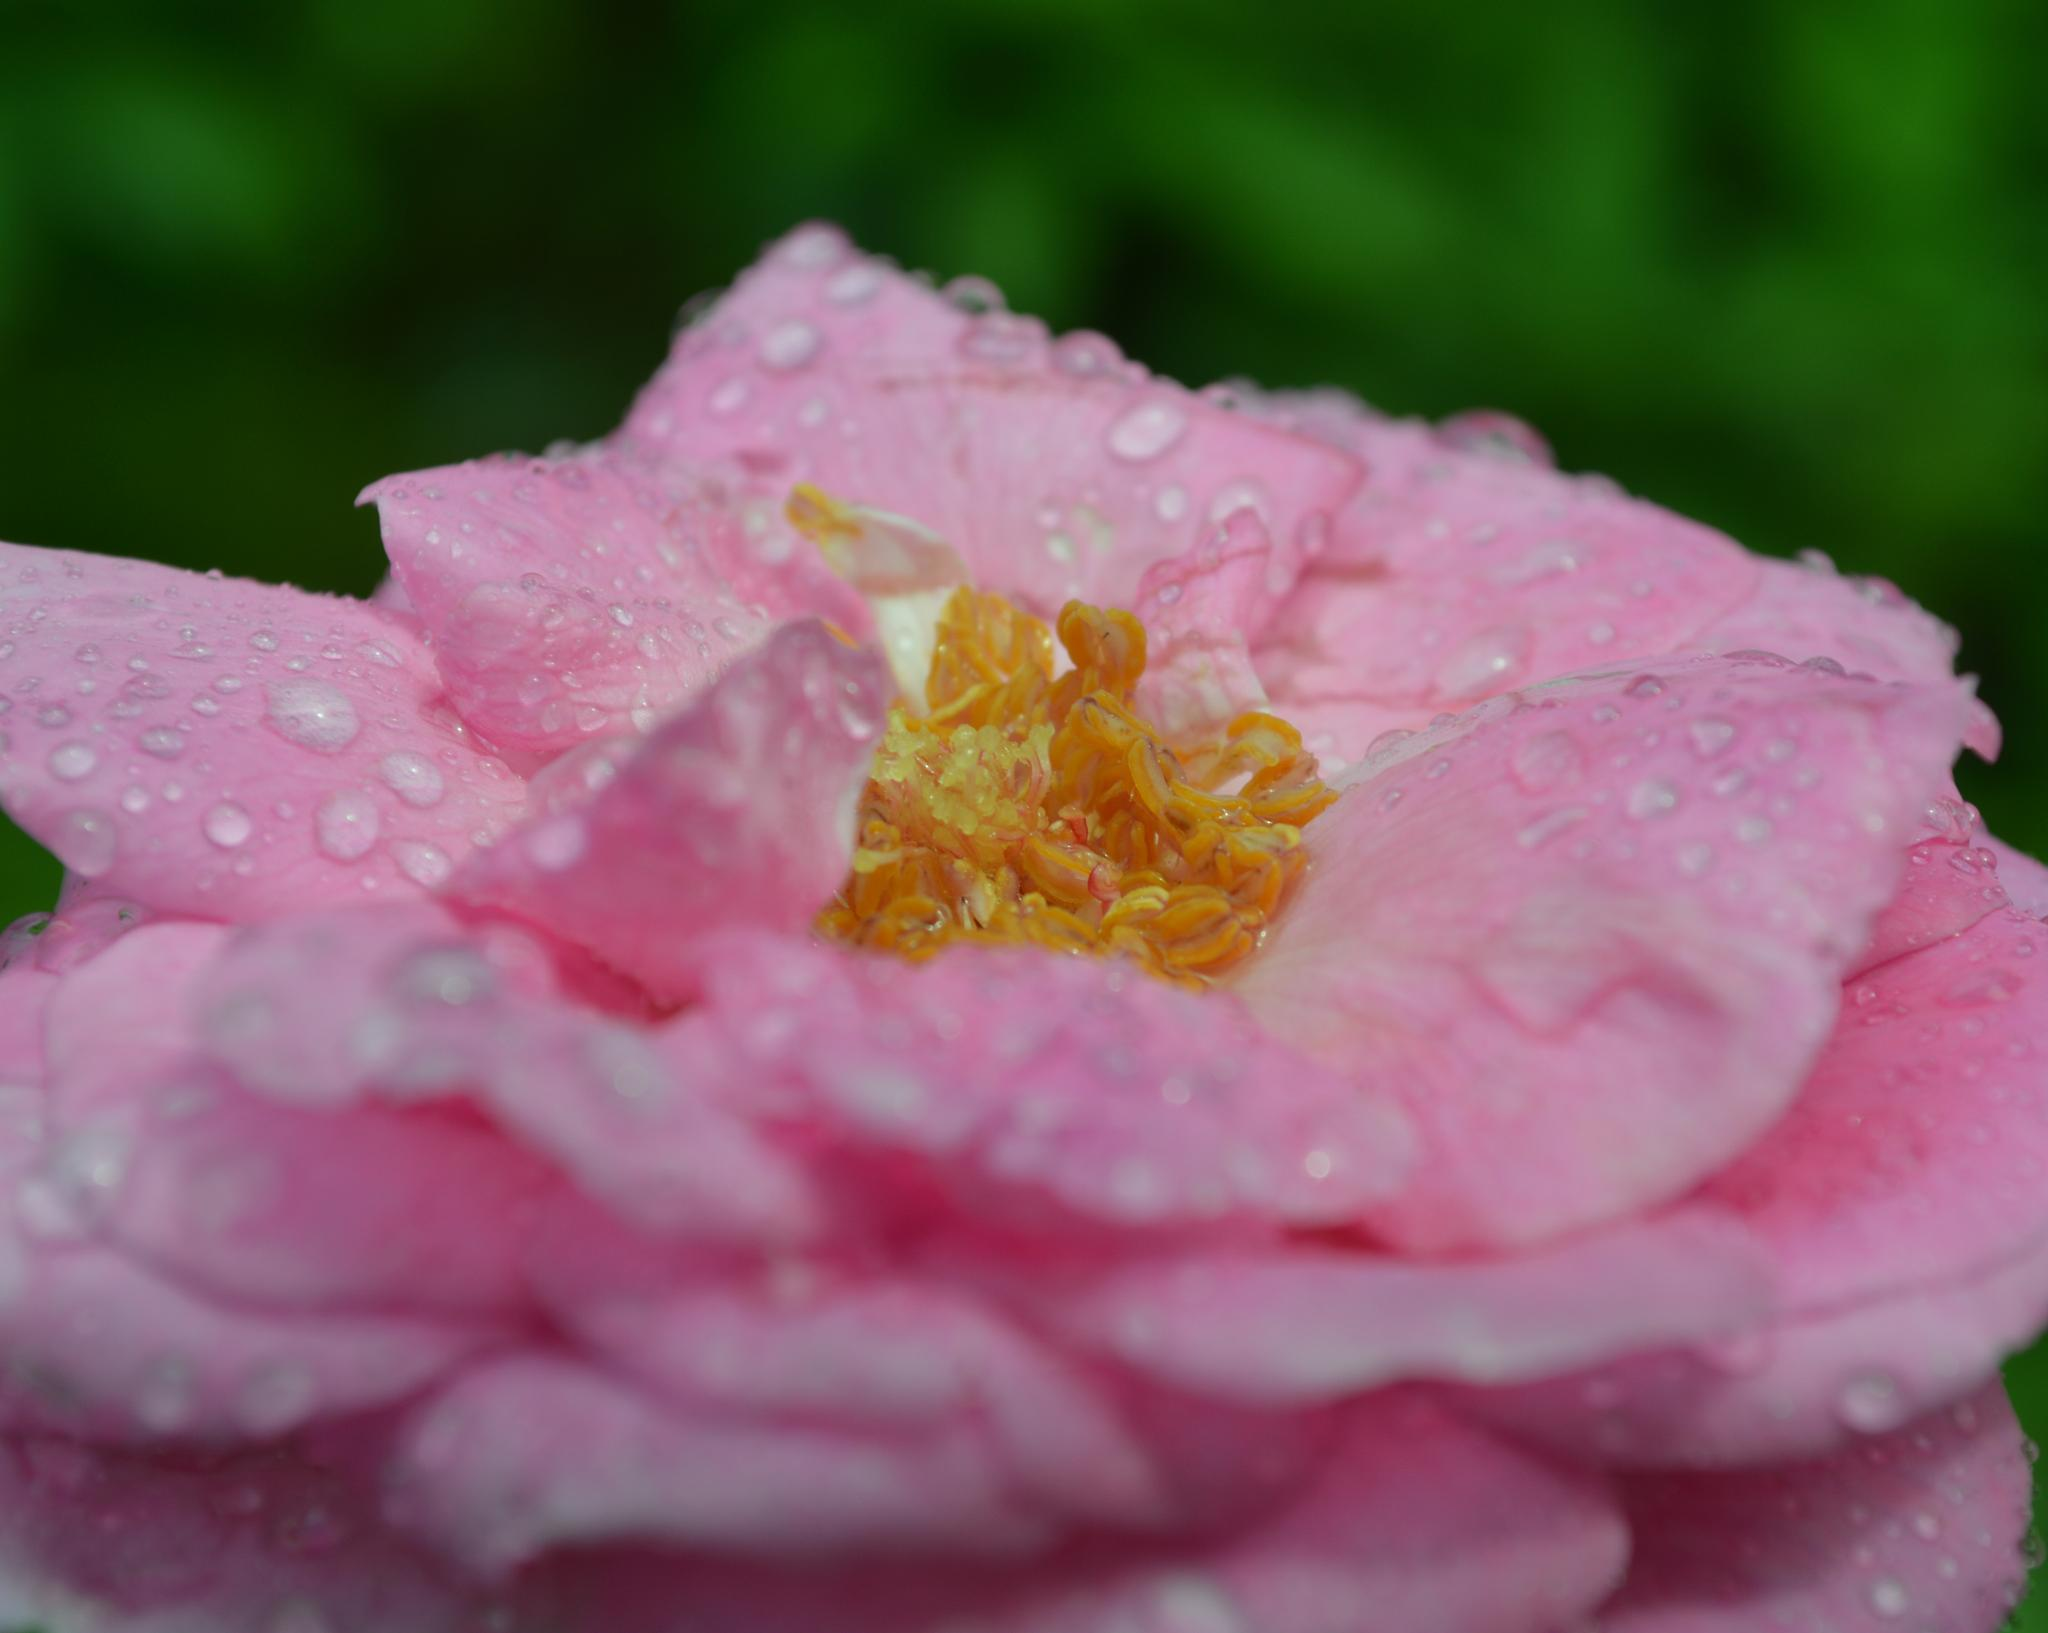 Dew Drops on Rose by wilson.dsouza.7161953